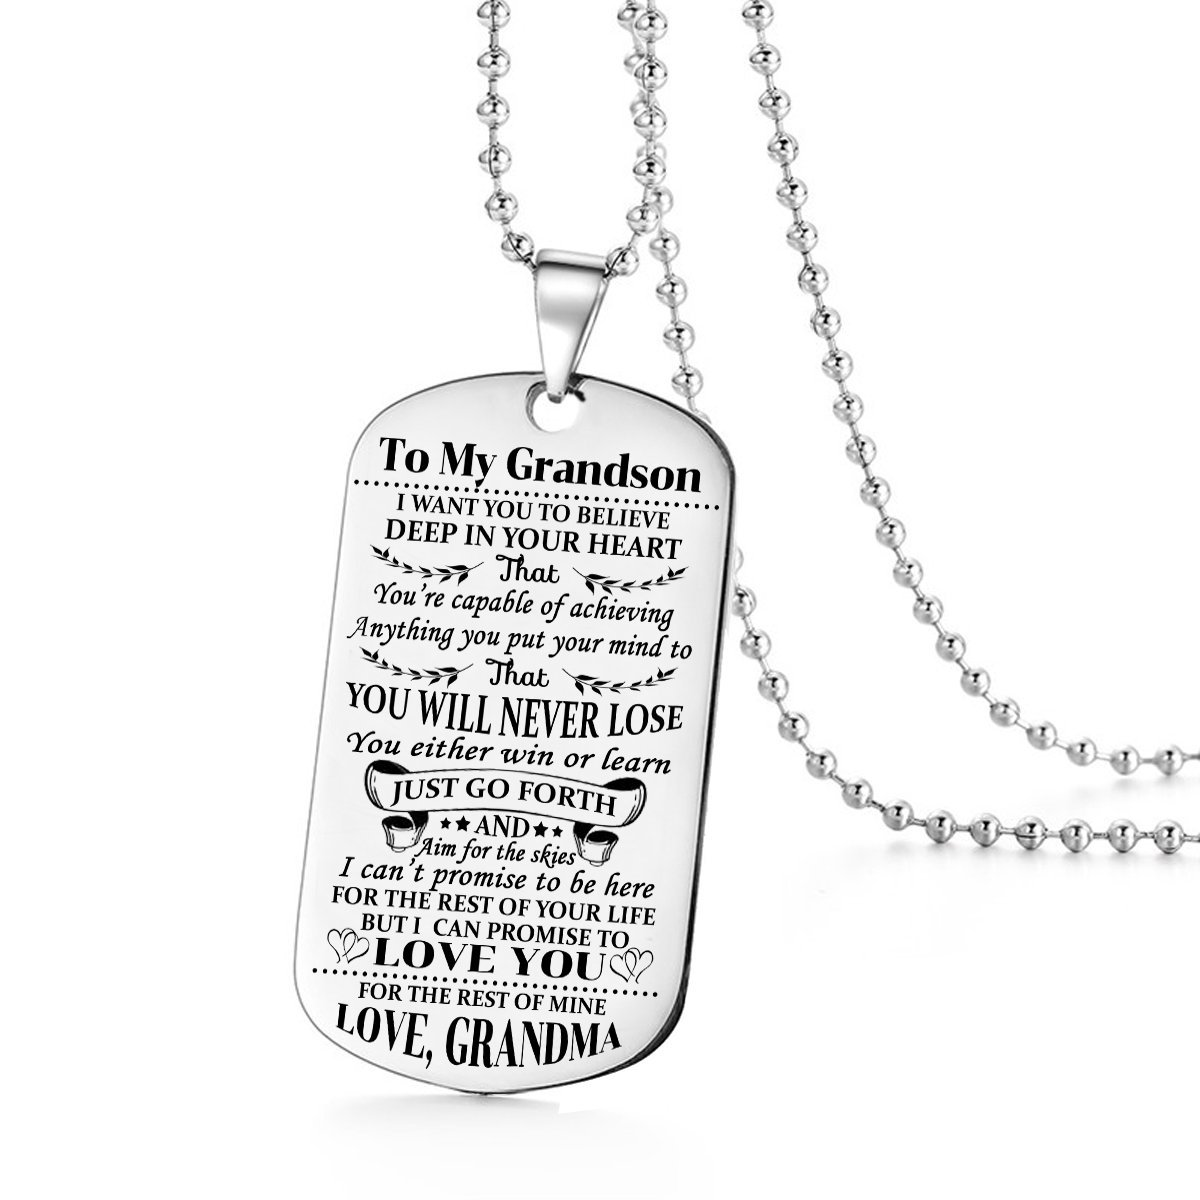 Stashix To My Grandson I want You Believe Love Grandma Dog Tags Necklace Birthday Gift Jewelry Graduation Military Personalized